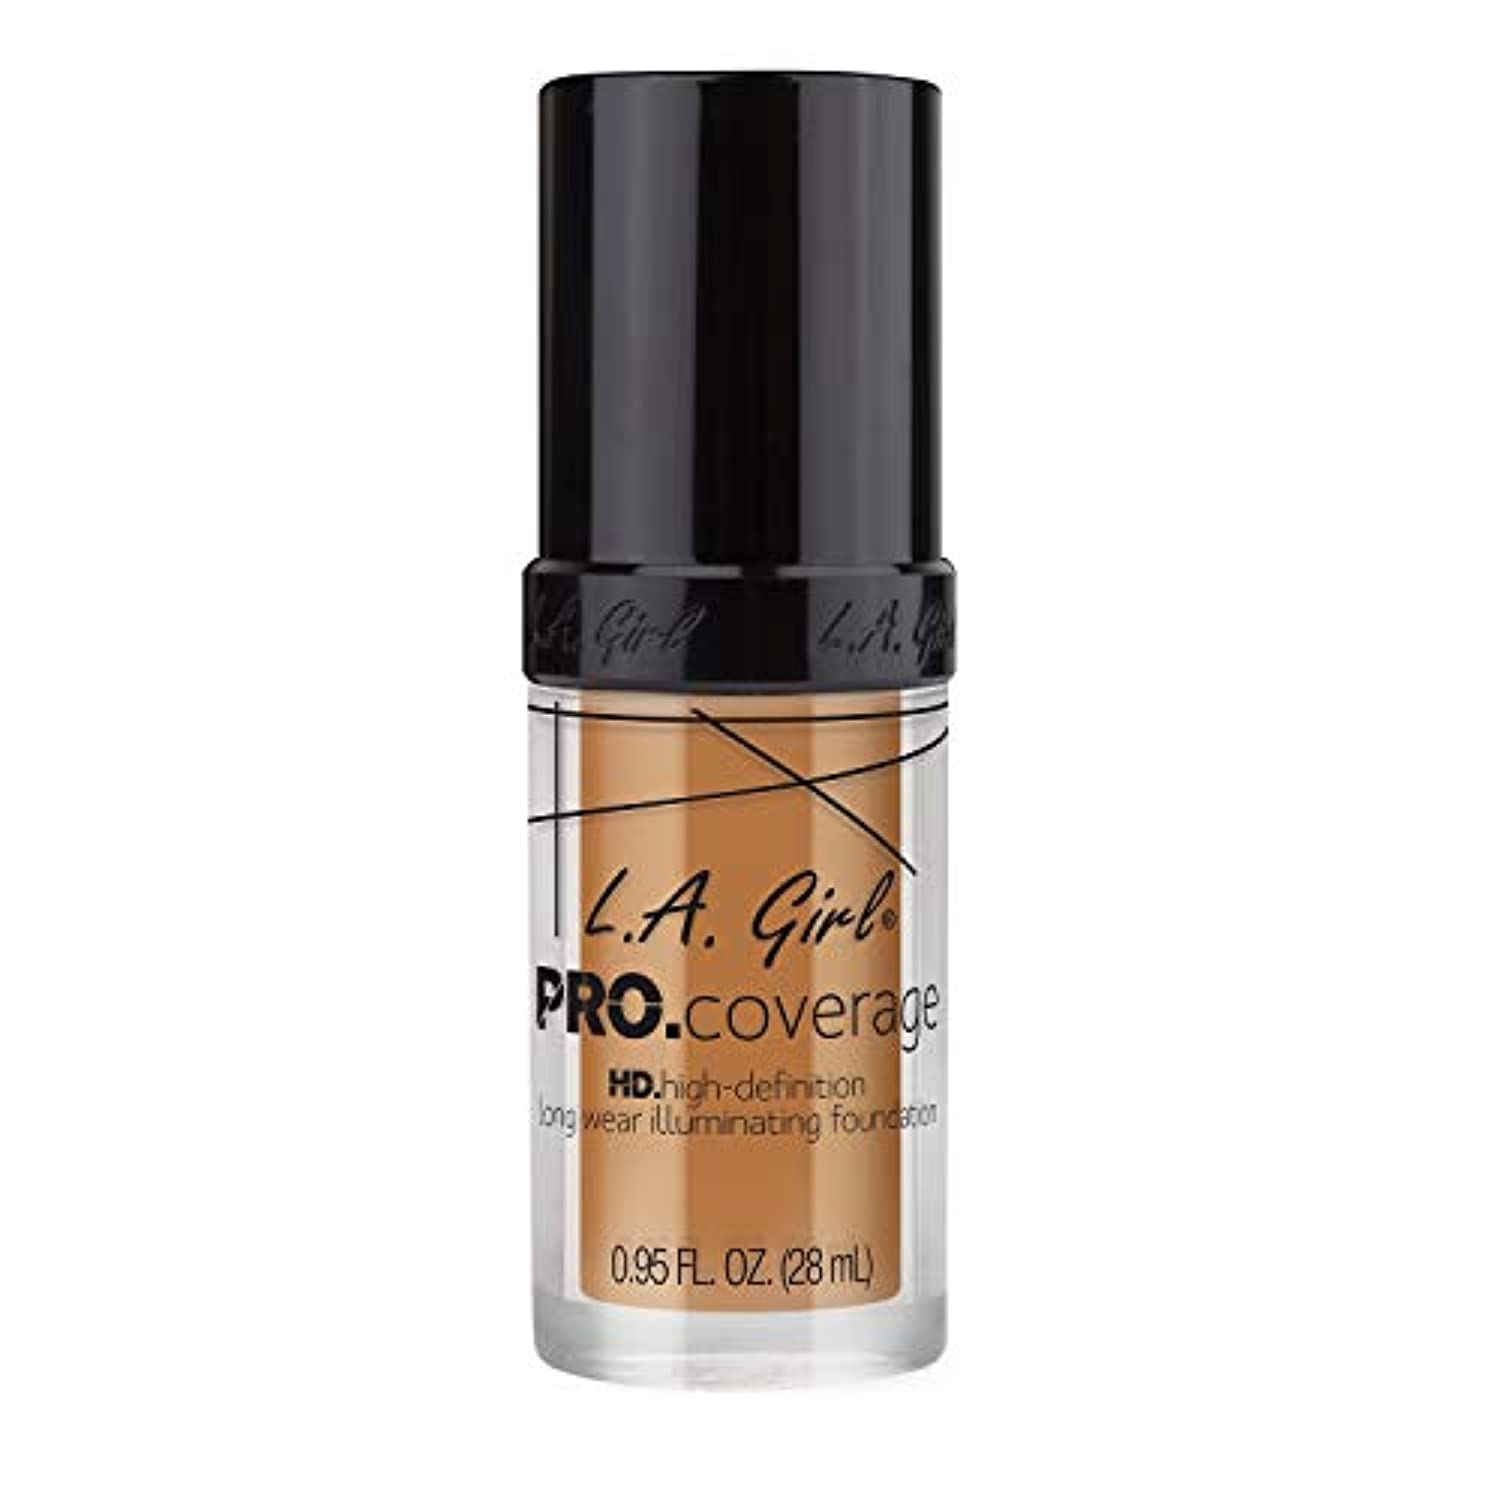 L.A. Girl Pro Coverage Illuminating Foundation - Warm Beige (並行輸入品)